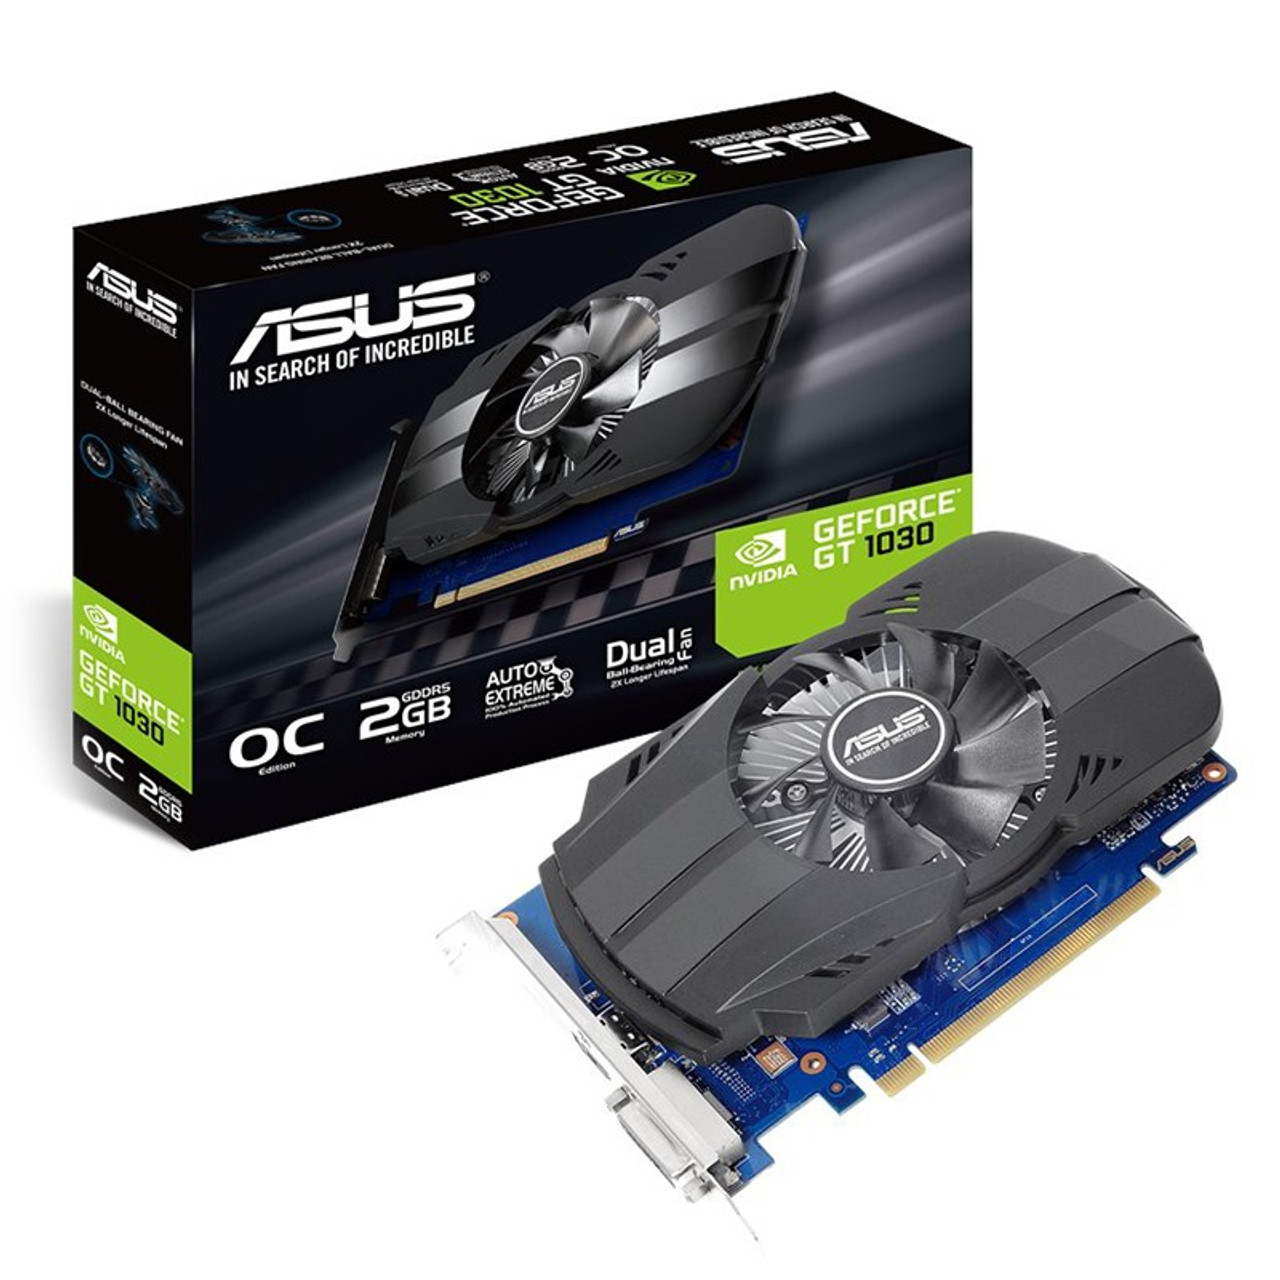 Image for Asus GeForce GT 1030 Pheonix OC 2GB Video Card CX Computer Superstore